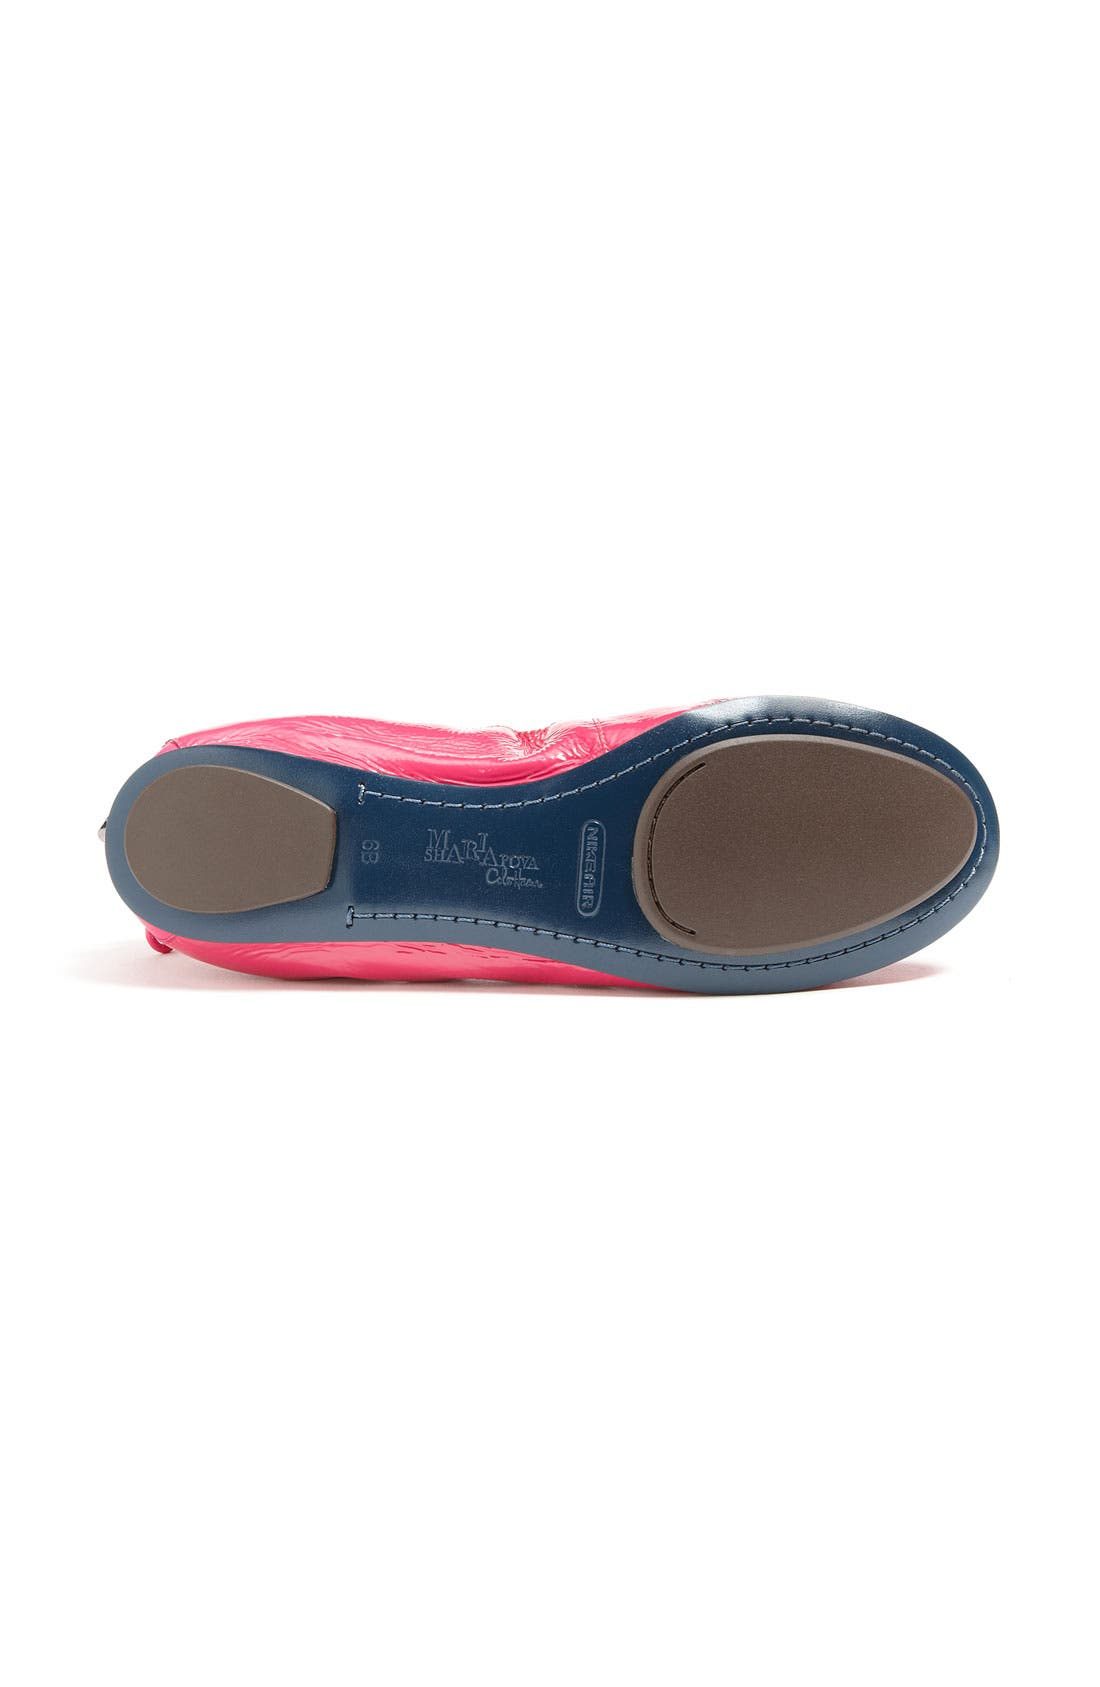 ,                             Maria Sharapova by Cole Haan 'Air Bacara' Flat,                             Alternate thumbnail 88, color,                             650